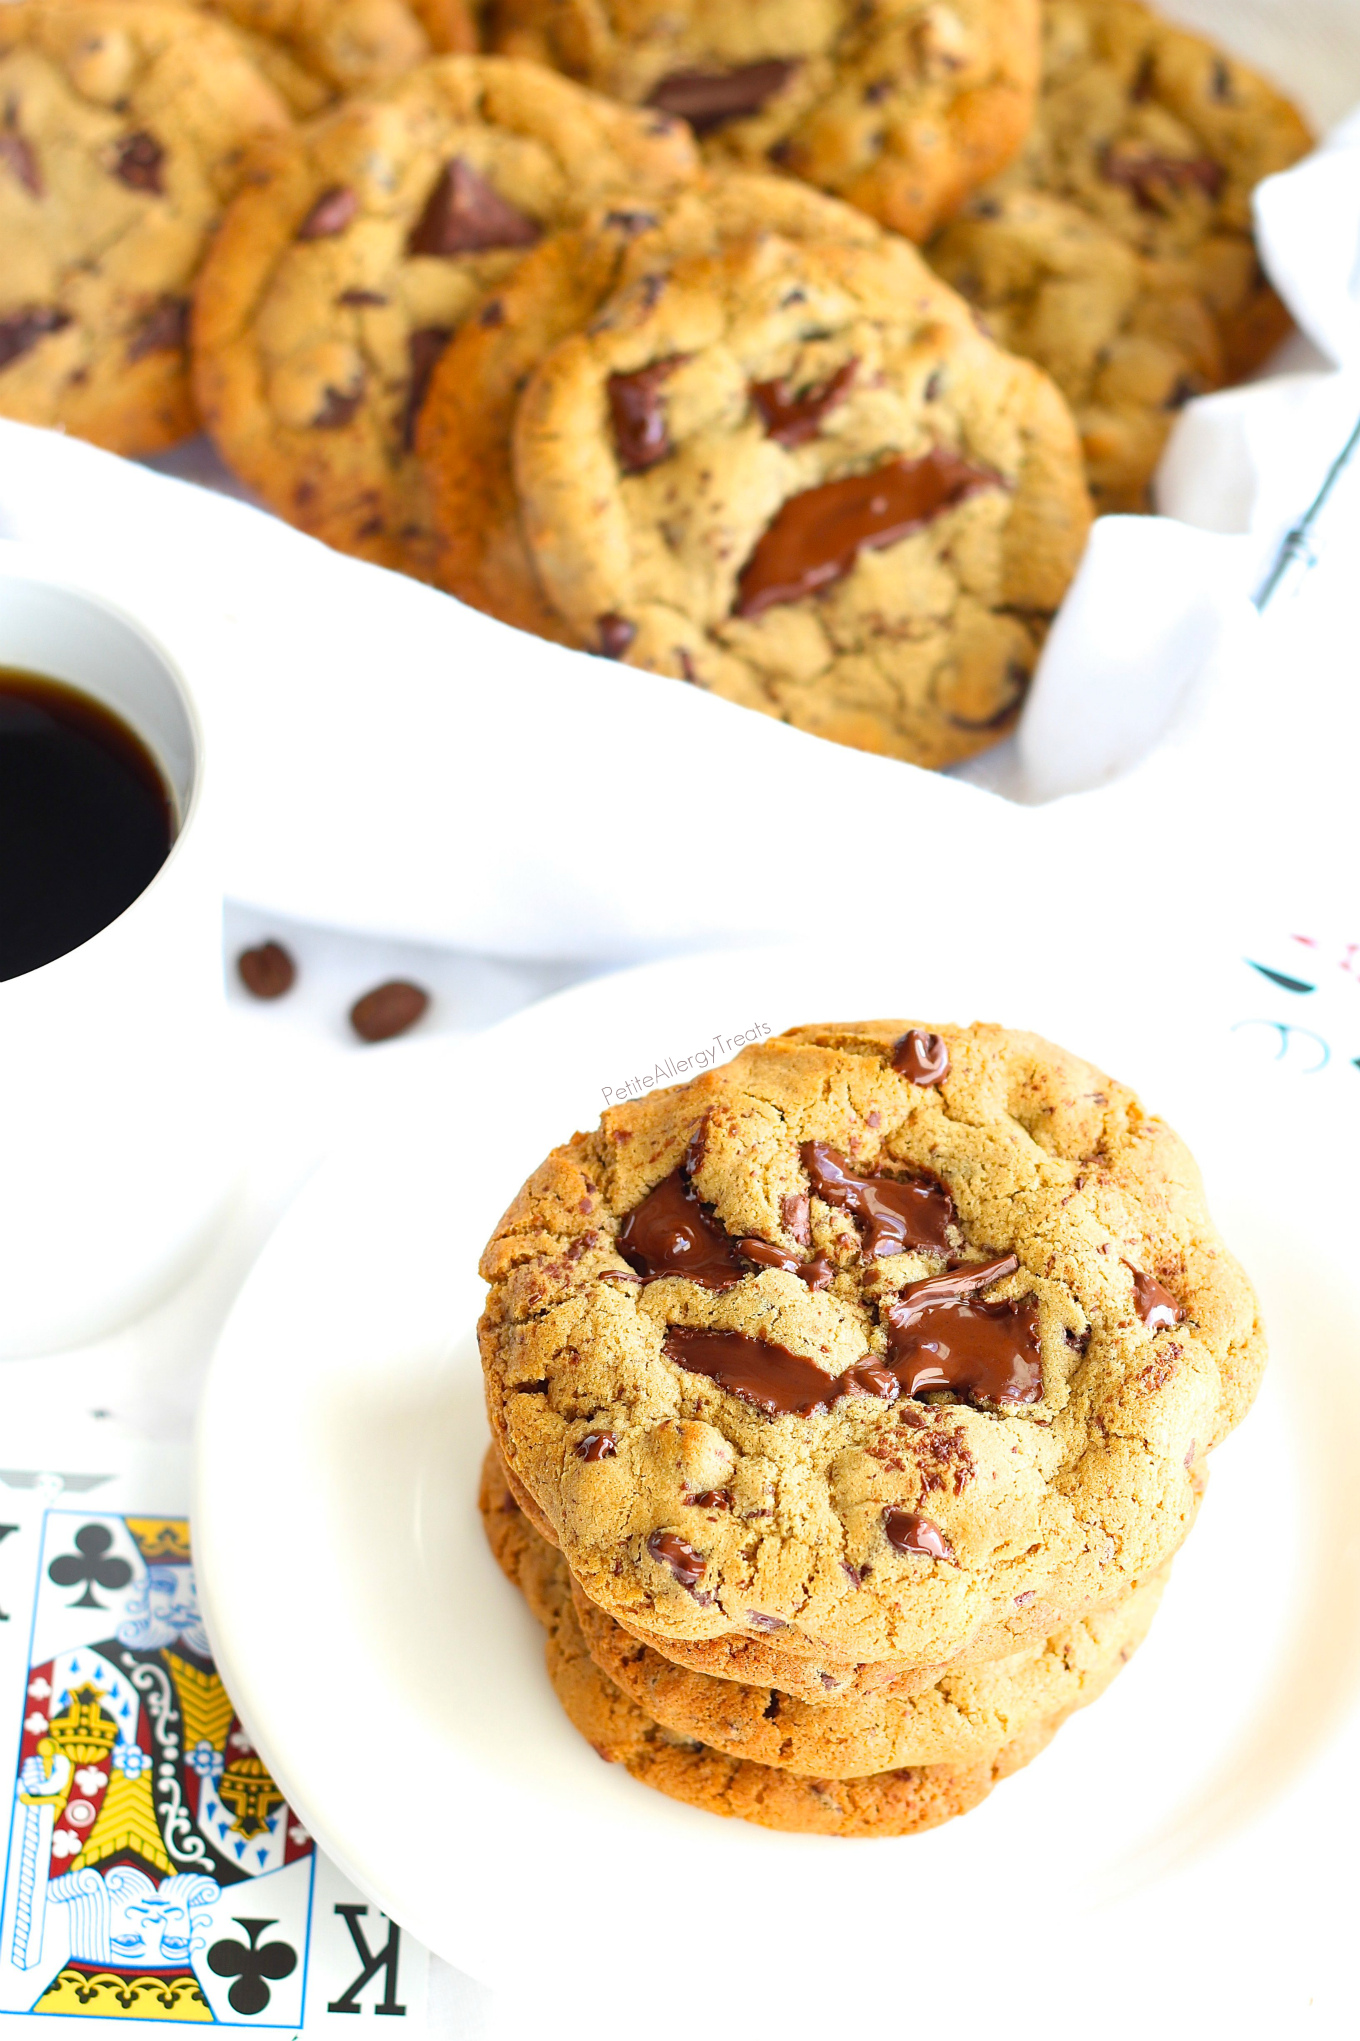 Gluten Free Vegan Chocolate Chip Cookies Recipe- Gooey egg free espresso chocolate chip cookies! Dairy Free sweet cookies!